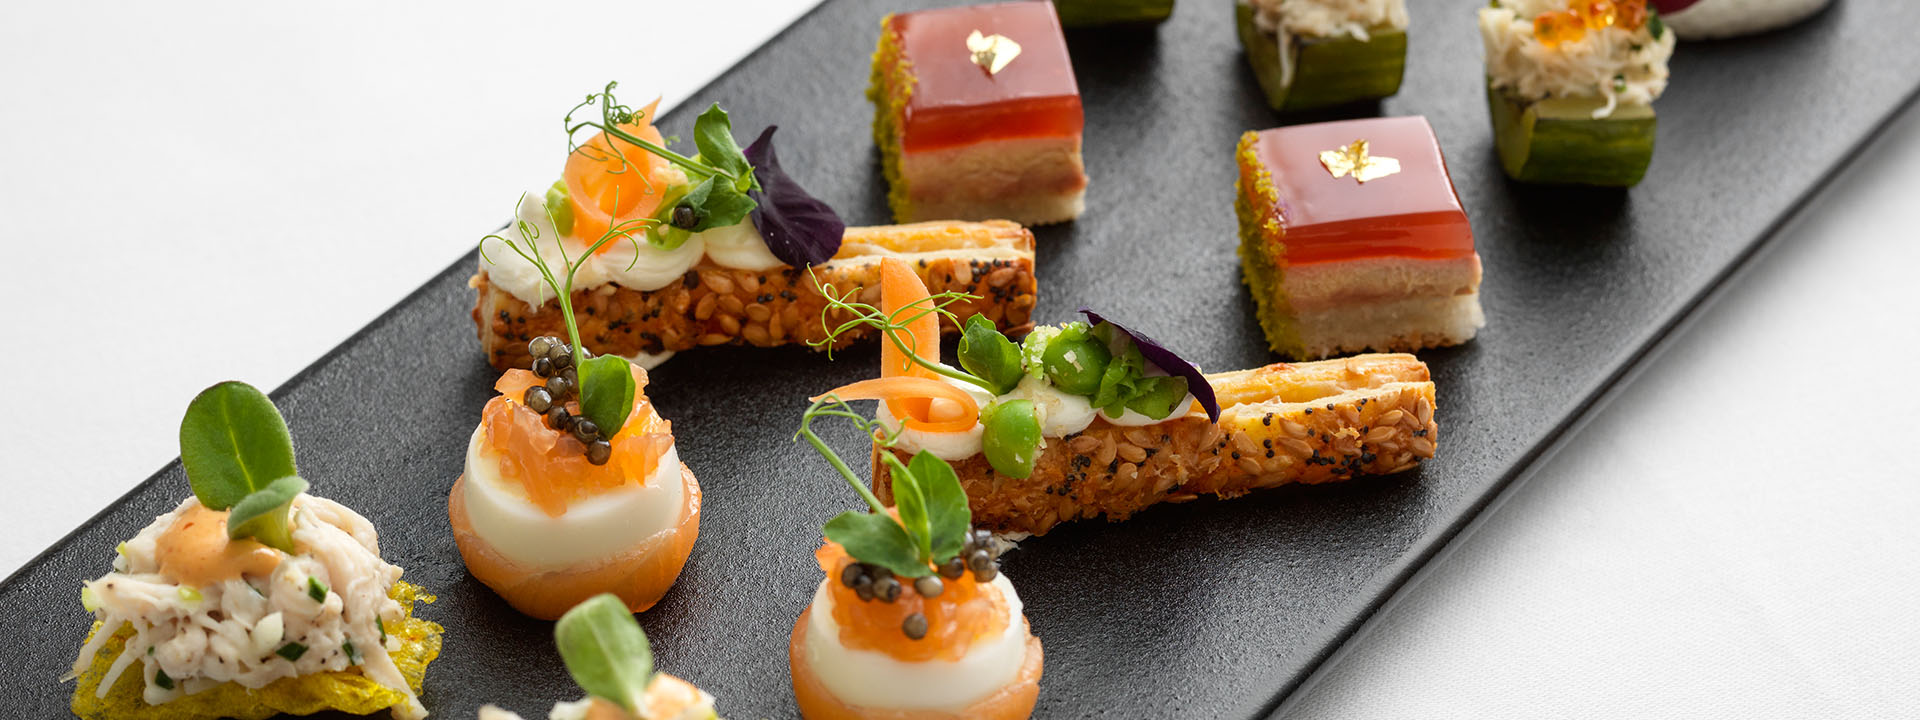 Food canapes